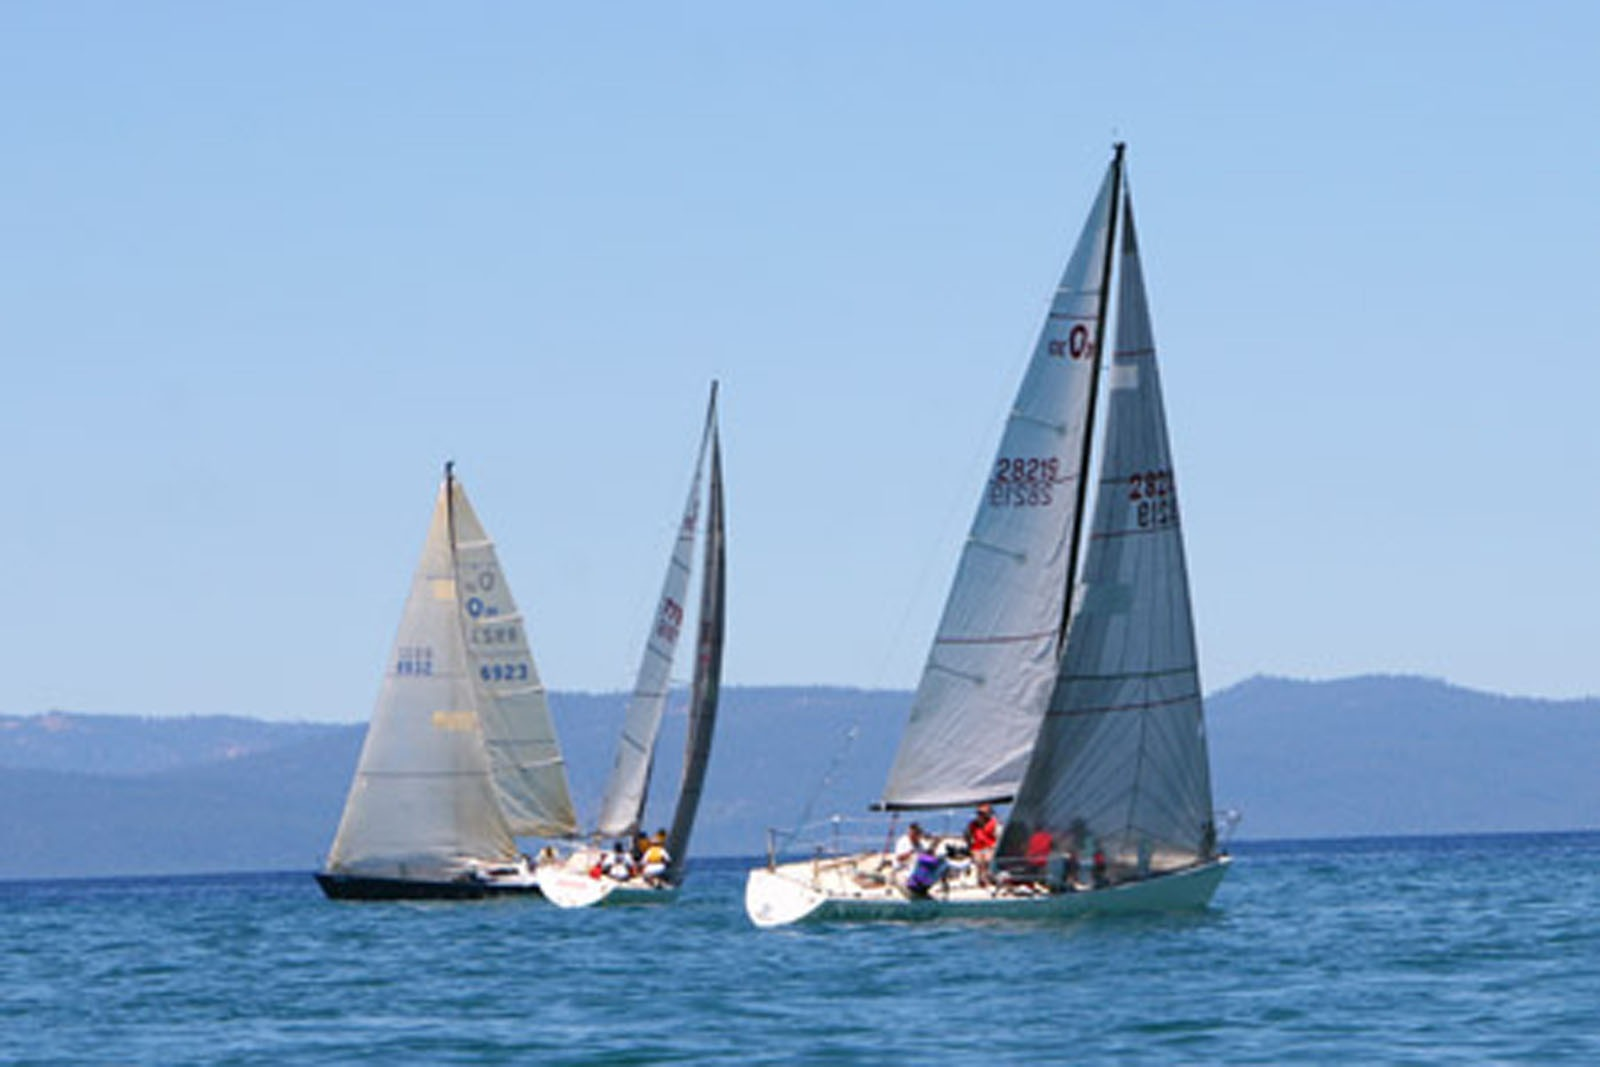 Sailboats on Lake Tahoe